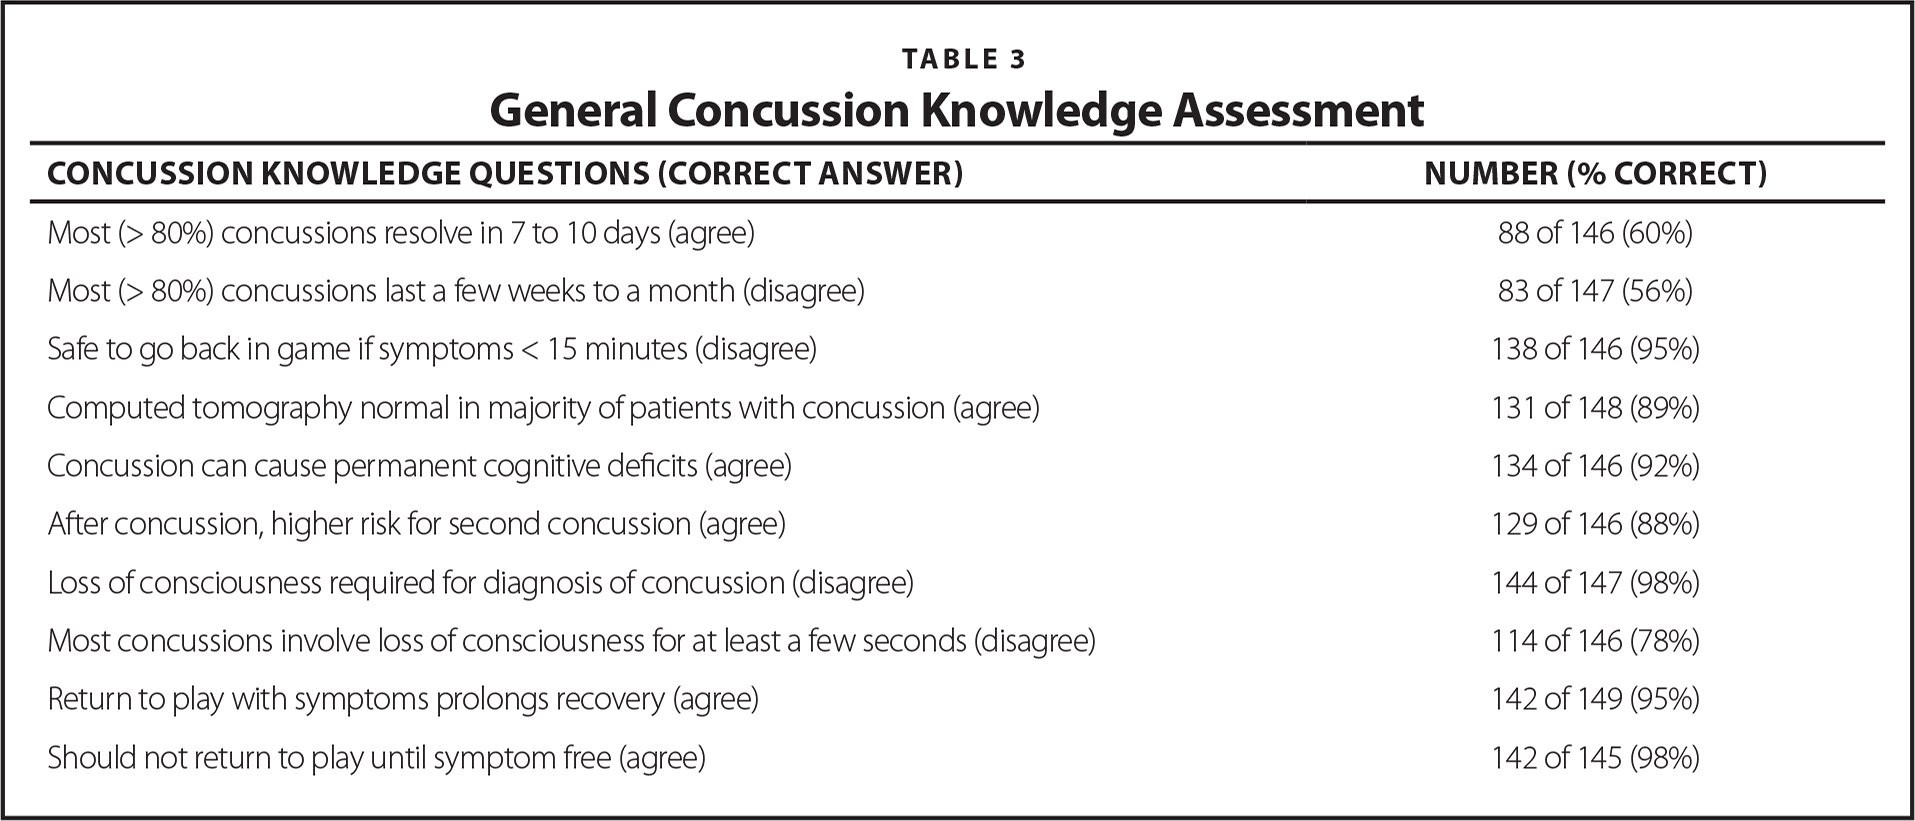 General Concussion Knowledge Assessment